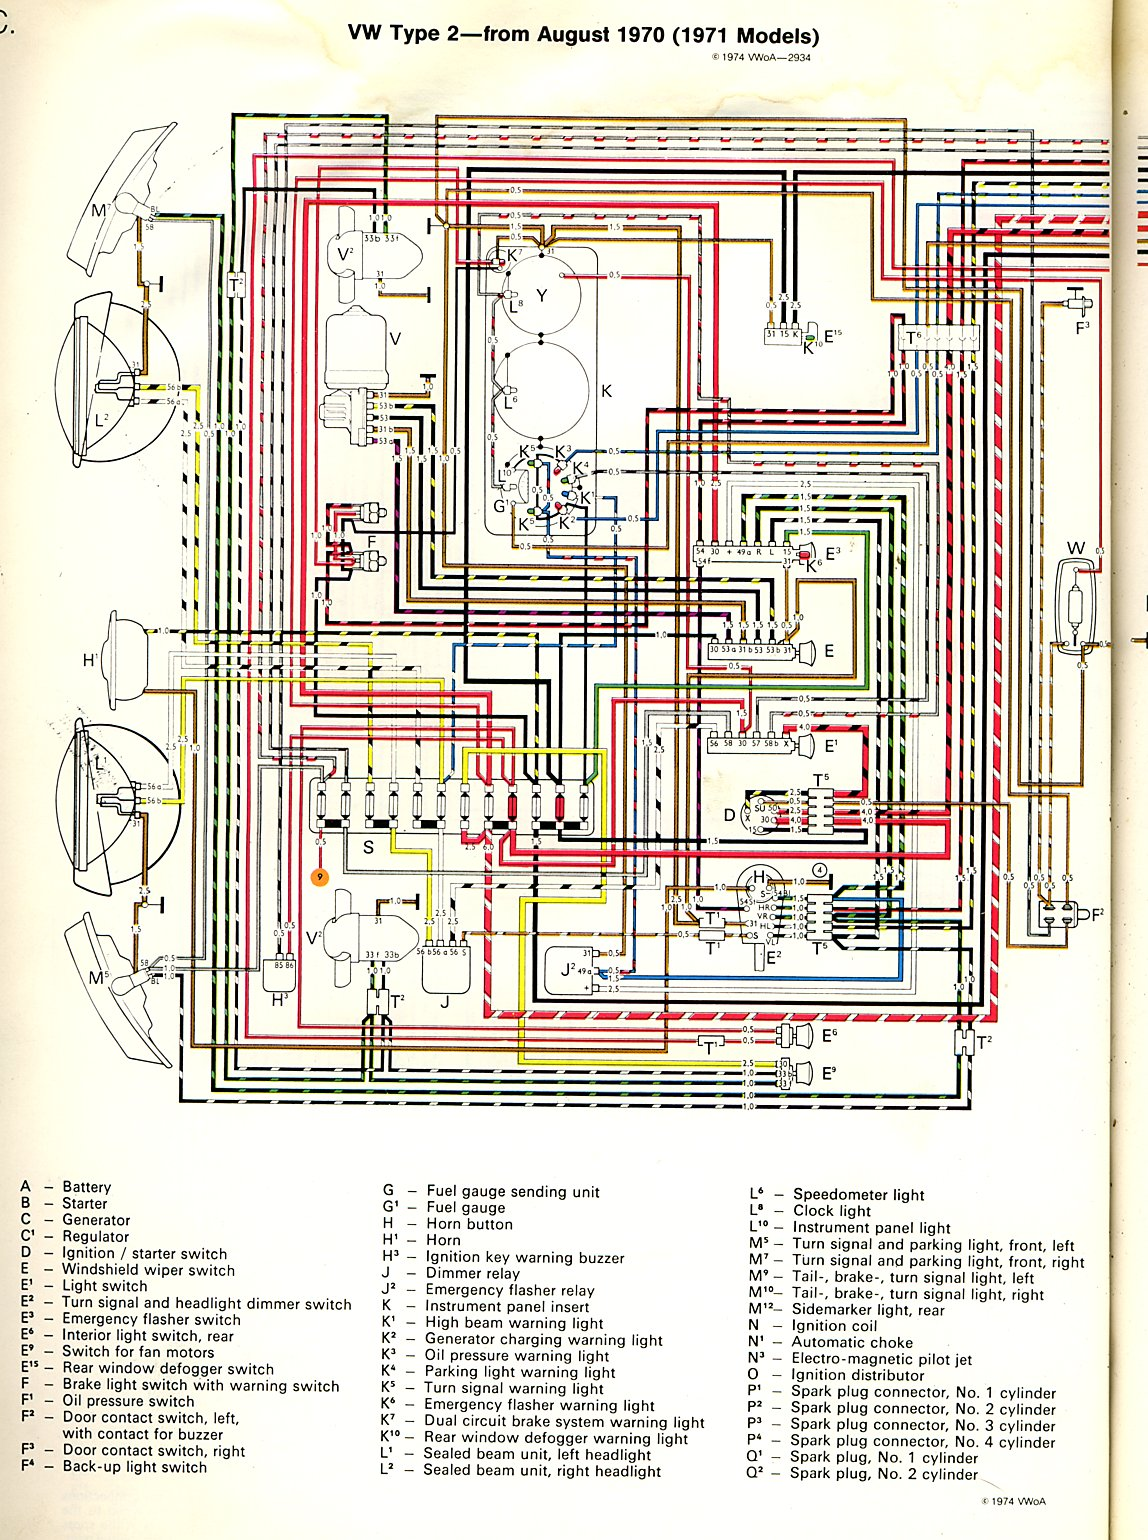 baybus_71a thesamba com type 2 wiring diagrams 1971 vw bus wiring diagram at crackthecode.co